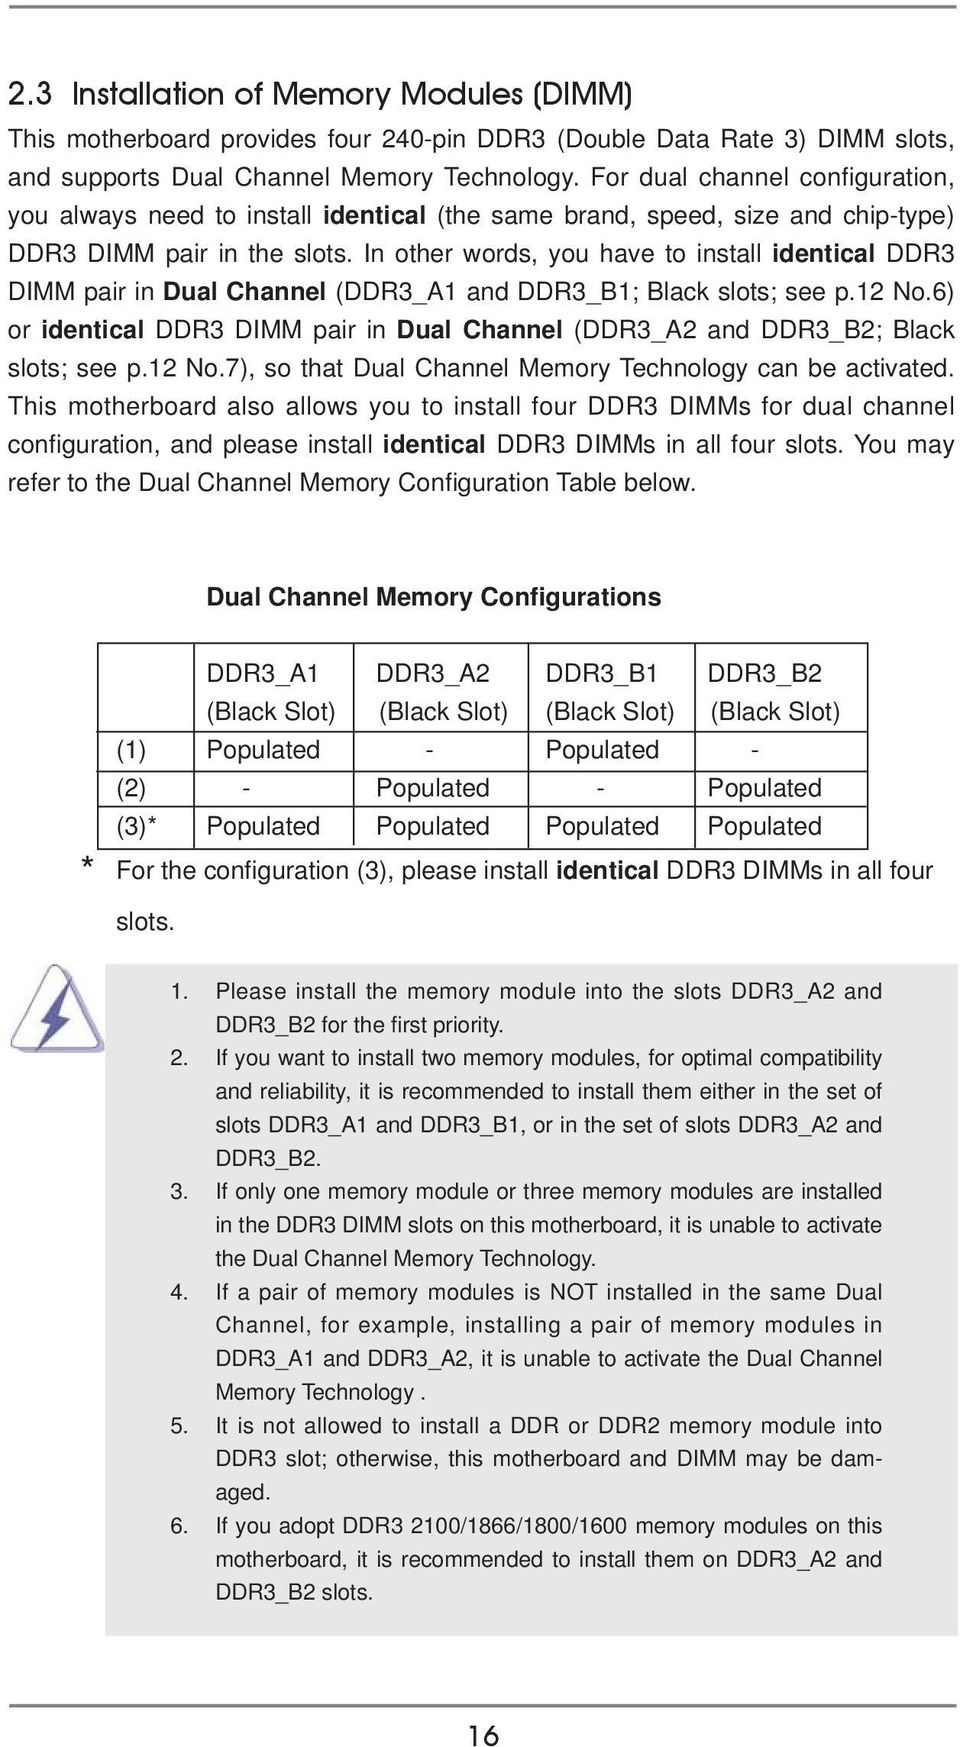 In other words, you have to install identical DDR3 DIMM pair in Dual Channel (DDR3_A1 and DDR3_B1; Black slots; see p.12 No.